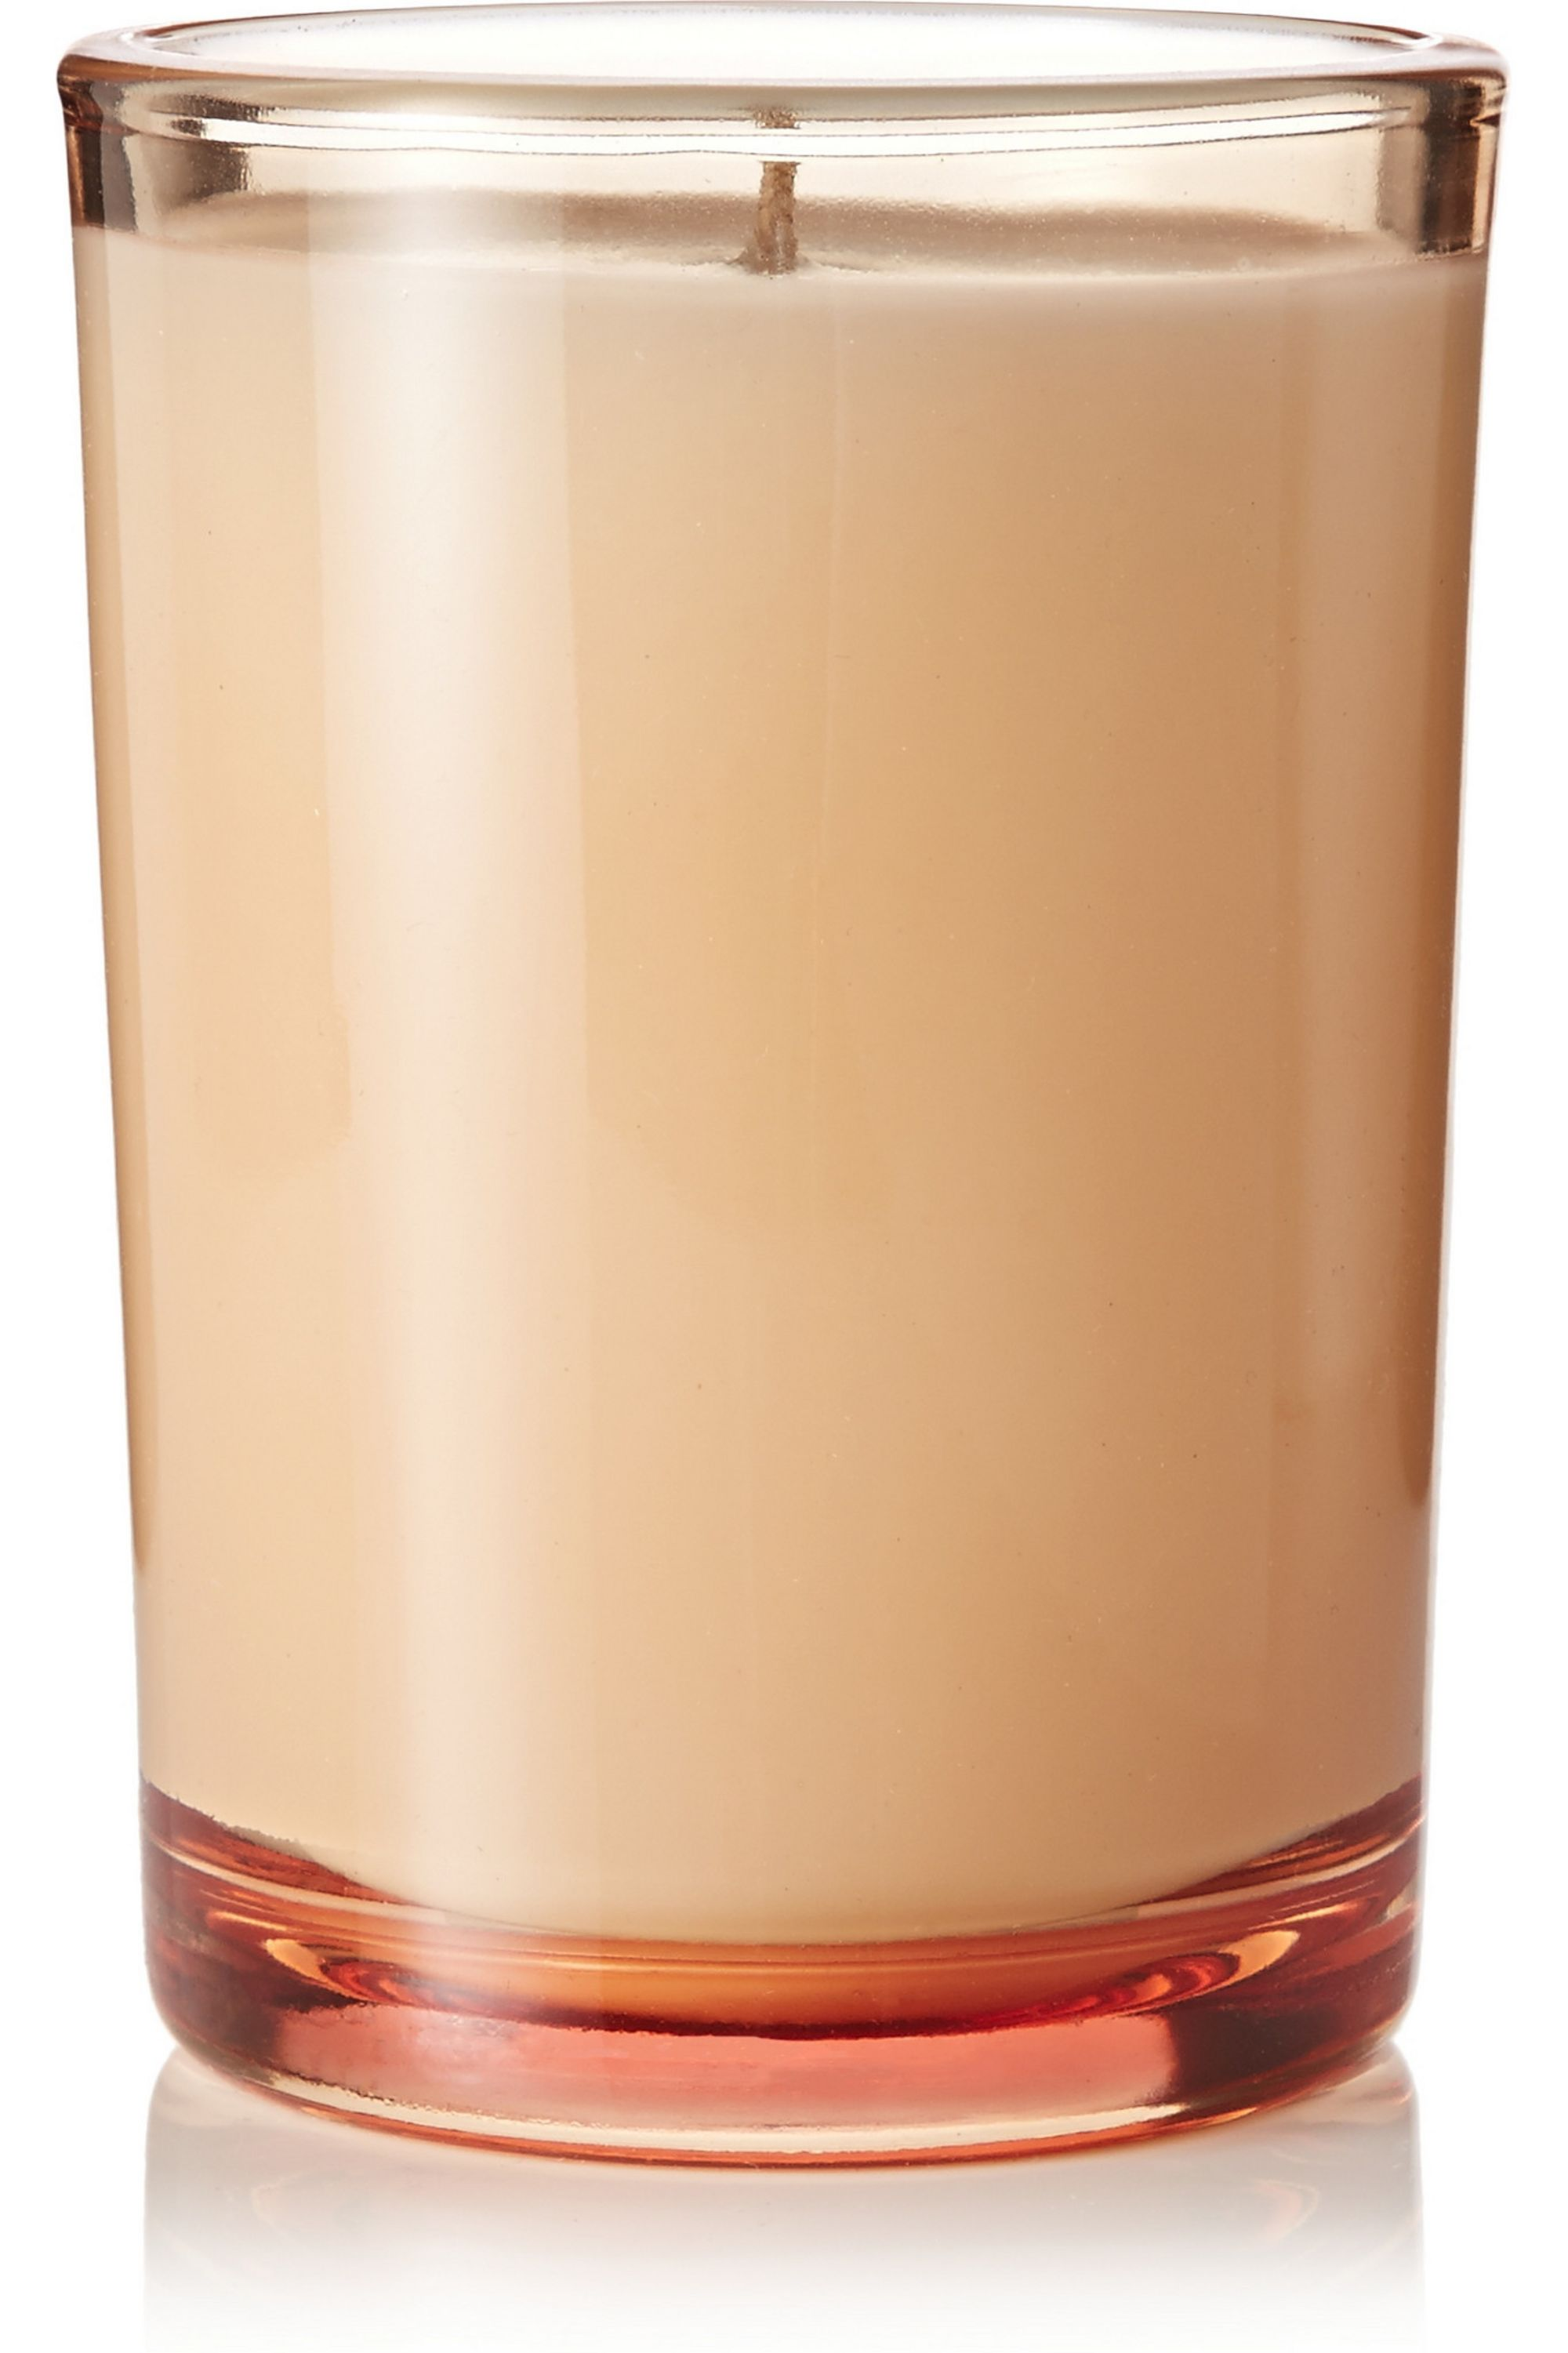 D.S. & Durga Spirit Lamp scented candle, 200g